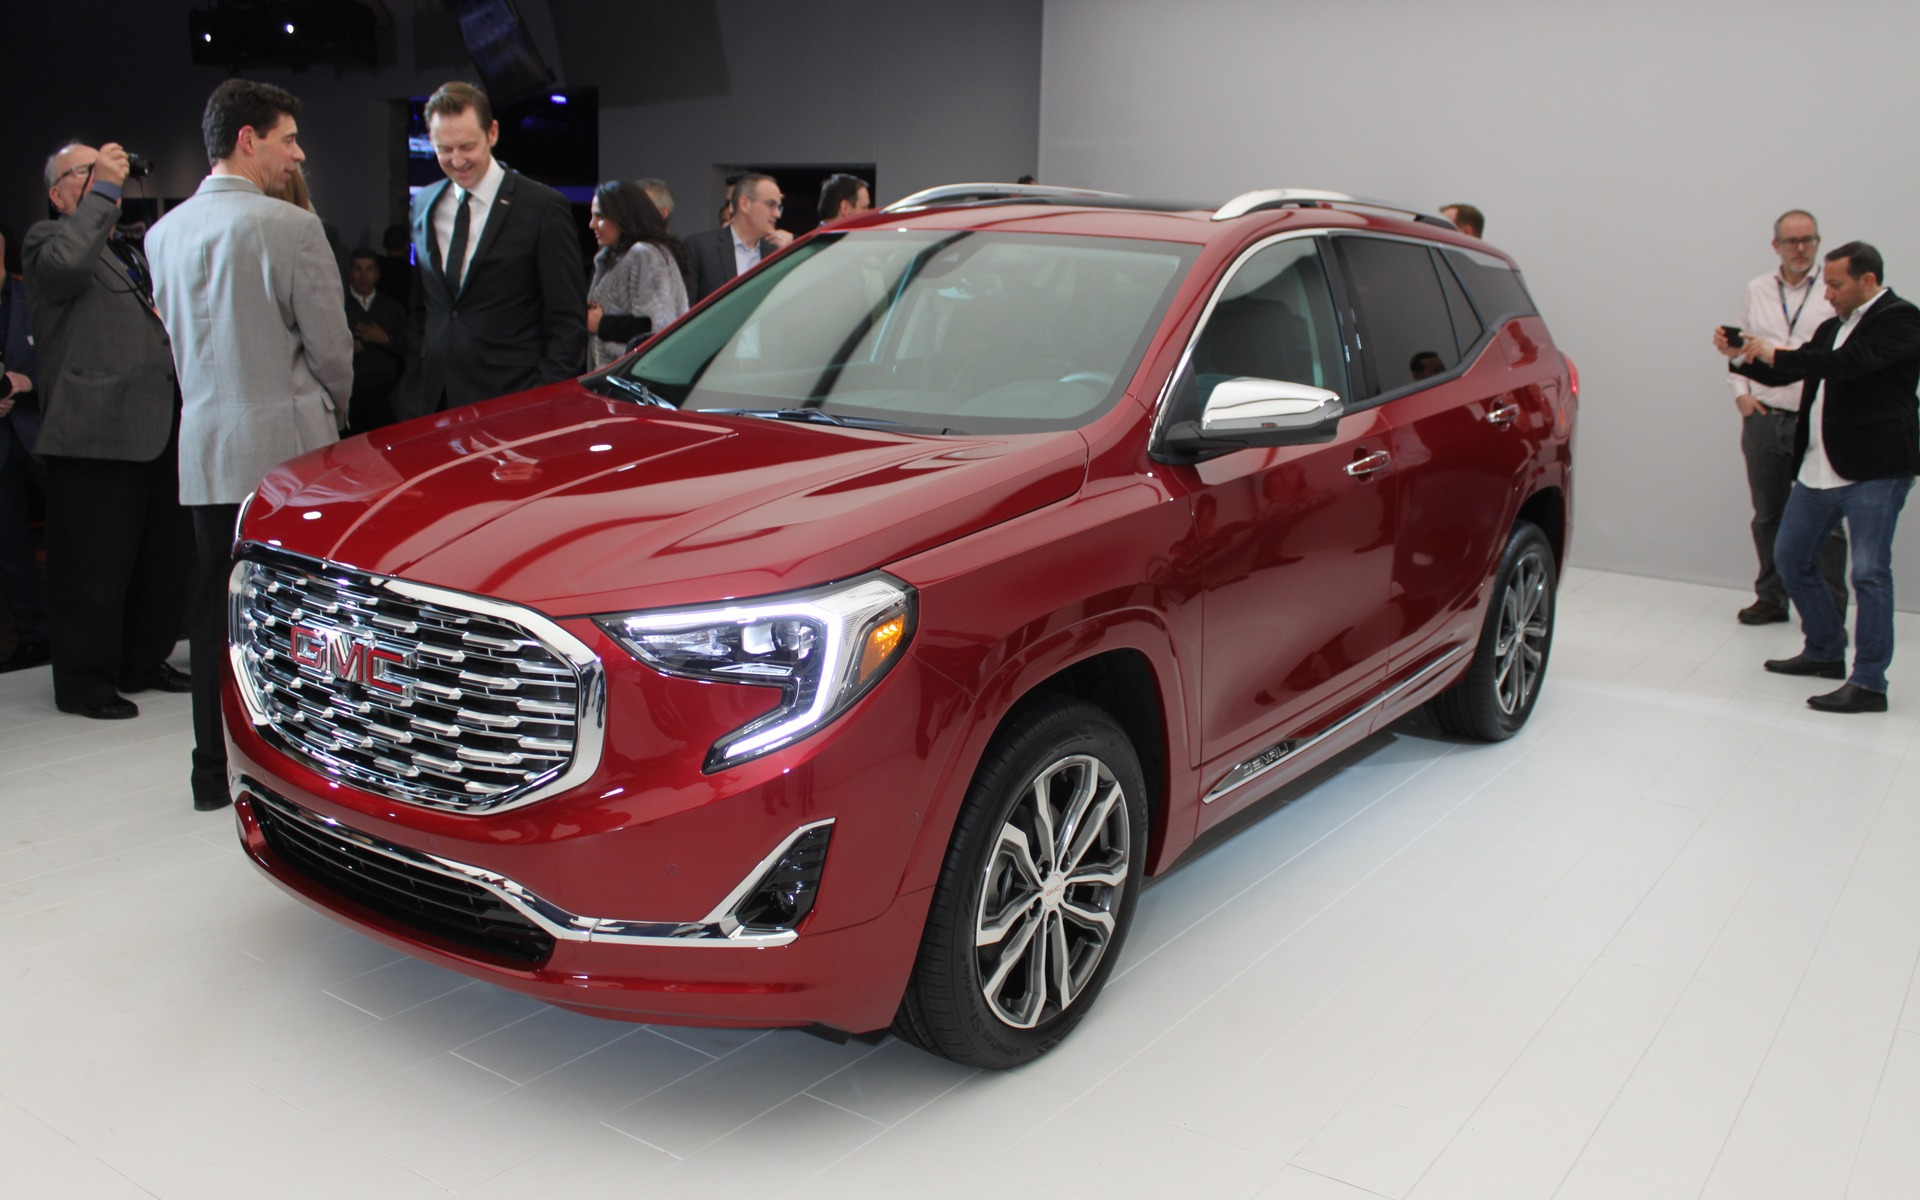 2018 GMC Terrain: the SUV Battle Rages on - The Car Guide